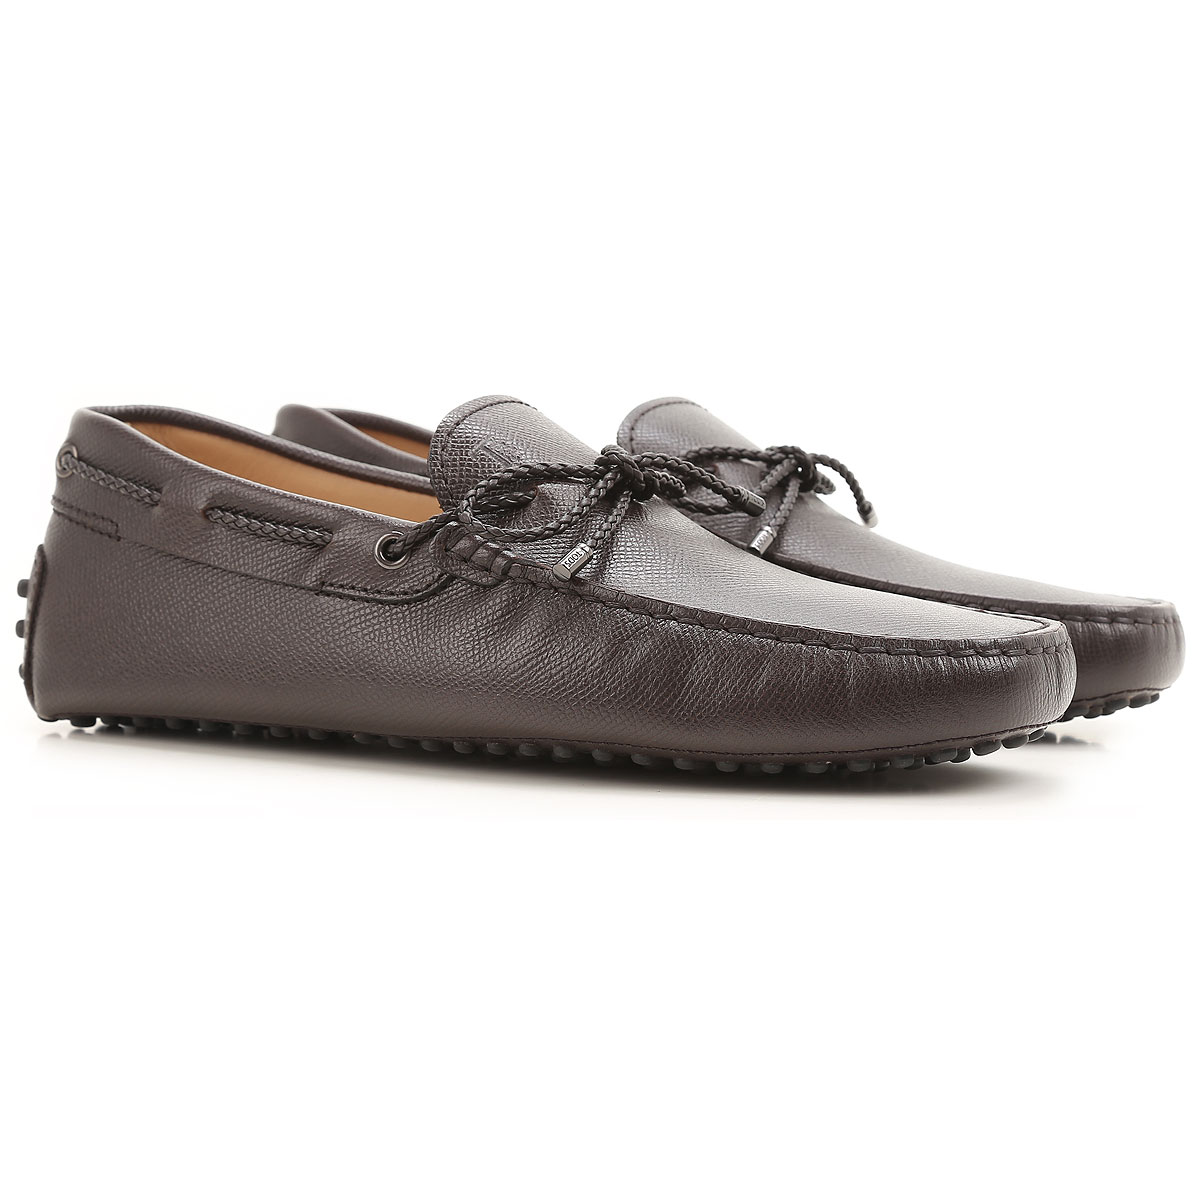 Image of Tods Driver Loafer Shoes for Men, Dark Brown, Leather, 2017, 6 7